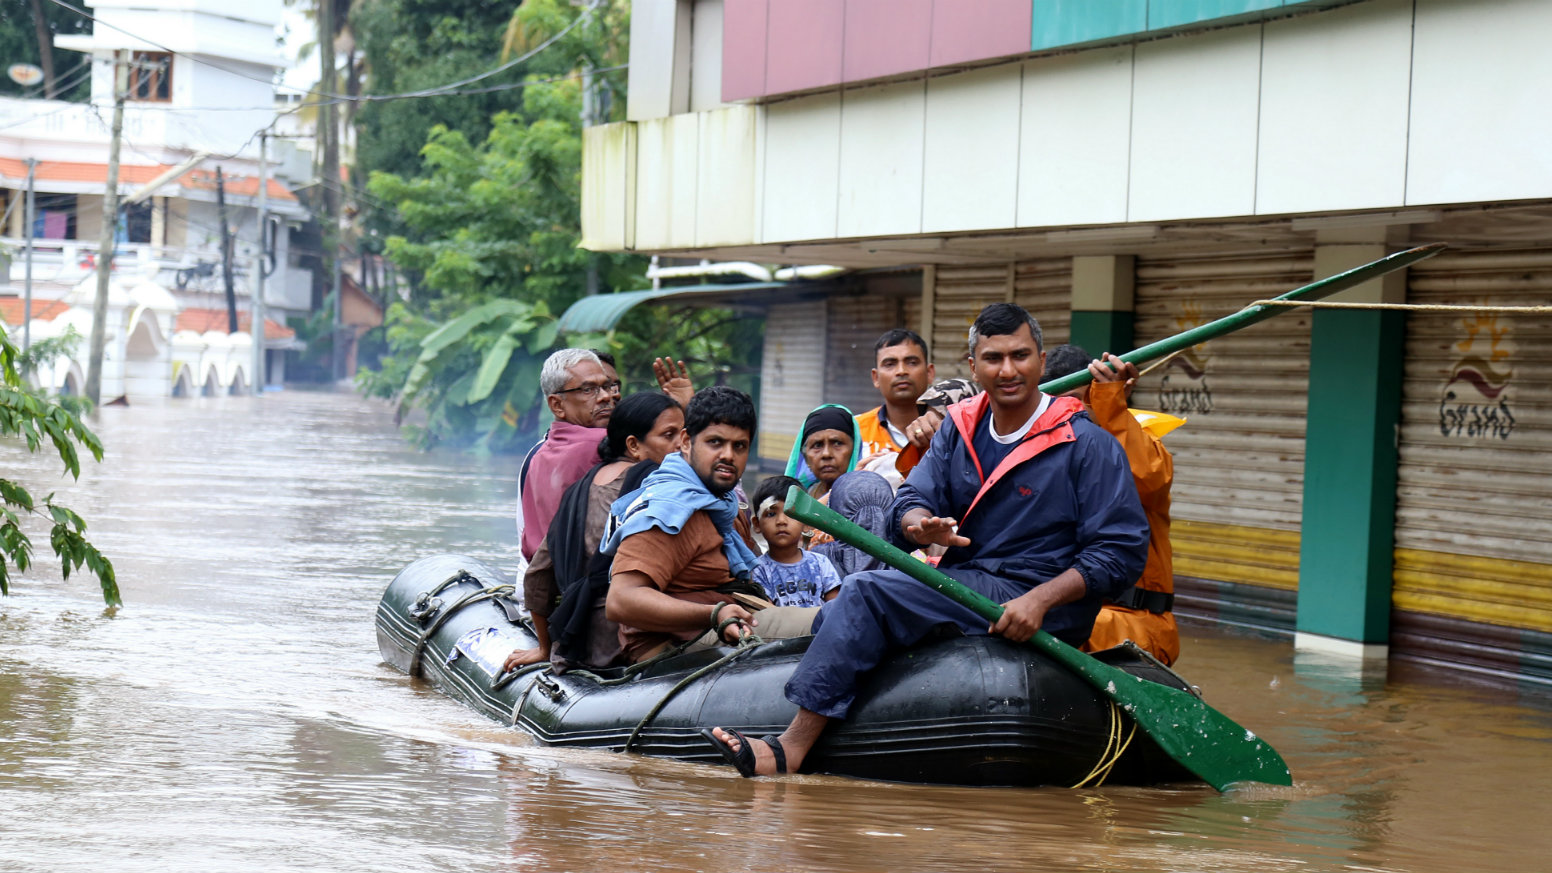 Keralas News Channels Show How To Cover A Disaster Responsibly